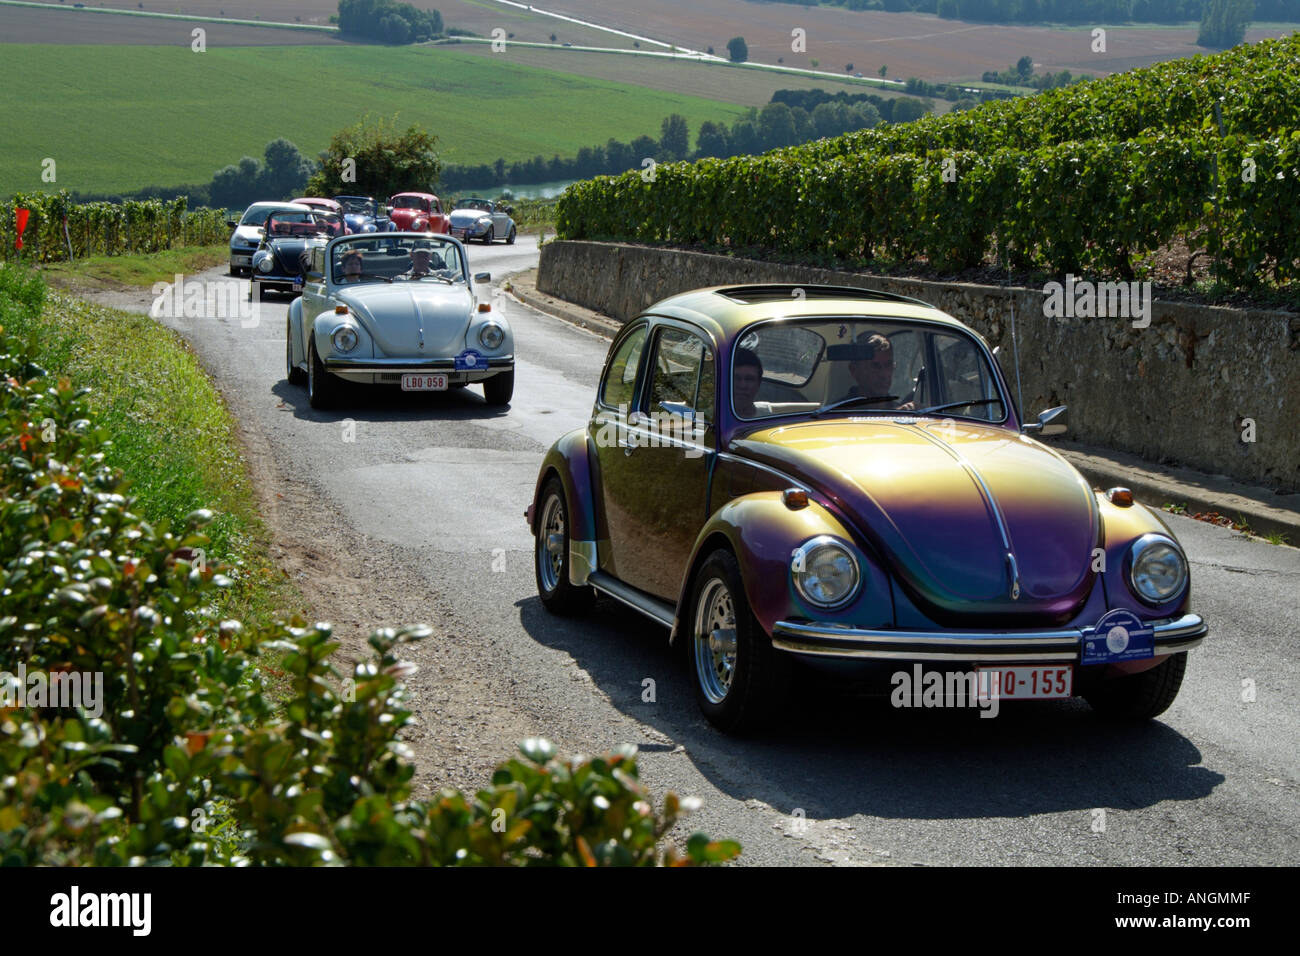 Vw Beetle Classic Cars On Tour In The Champagne Region Of France